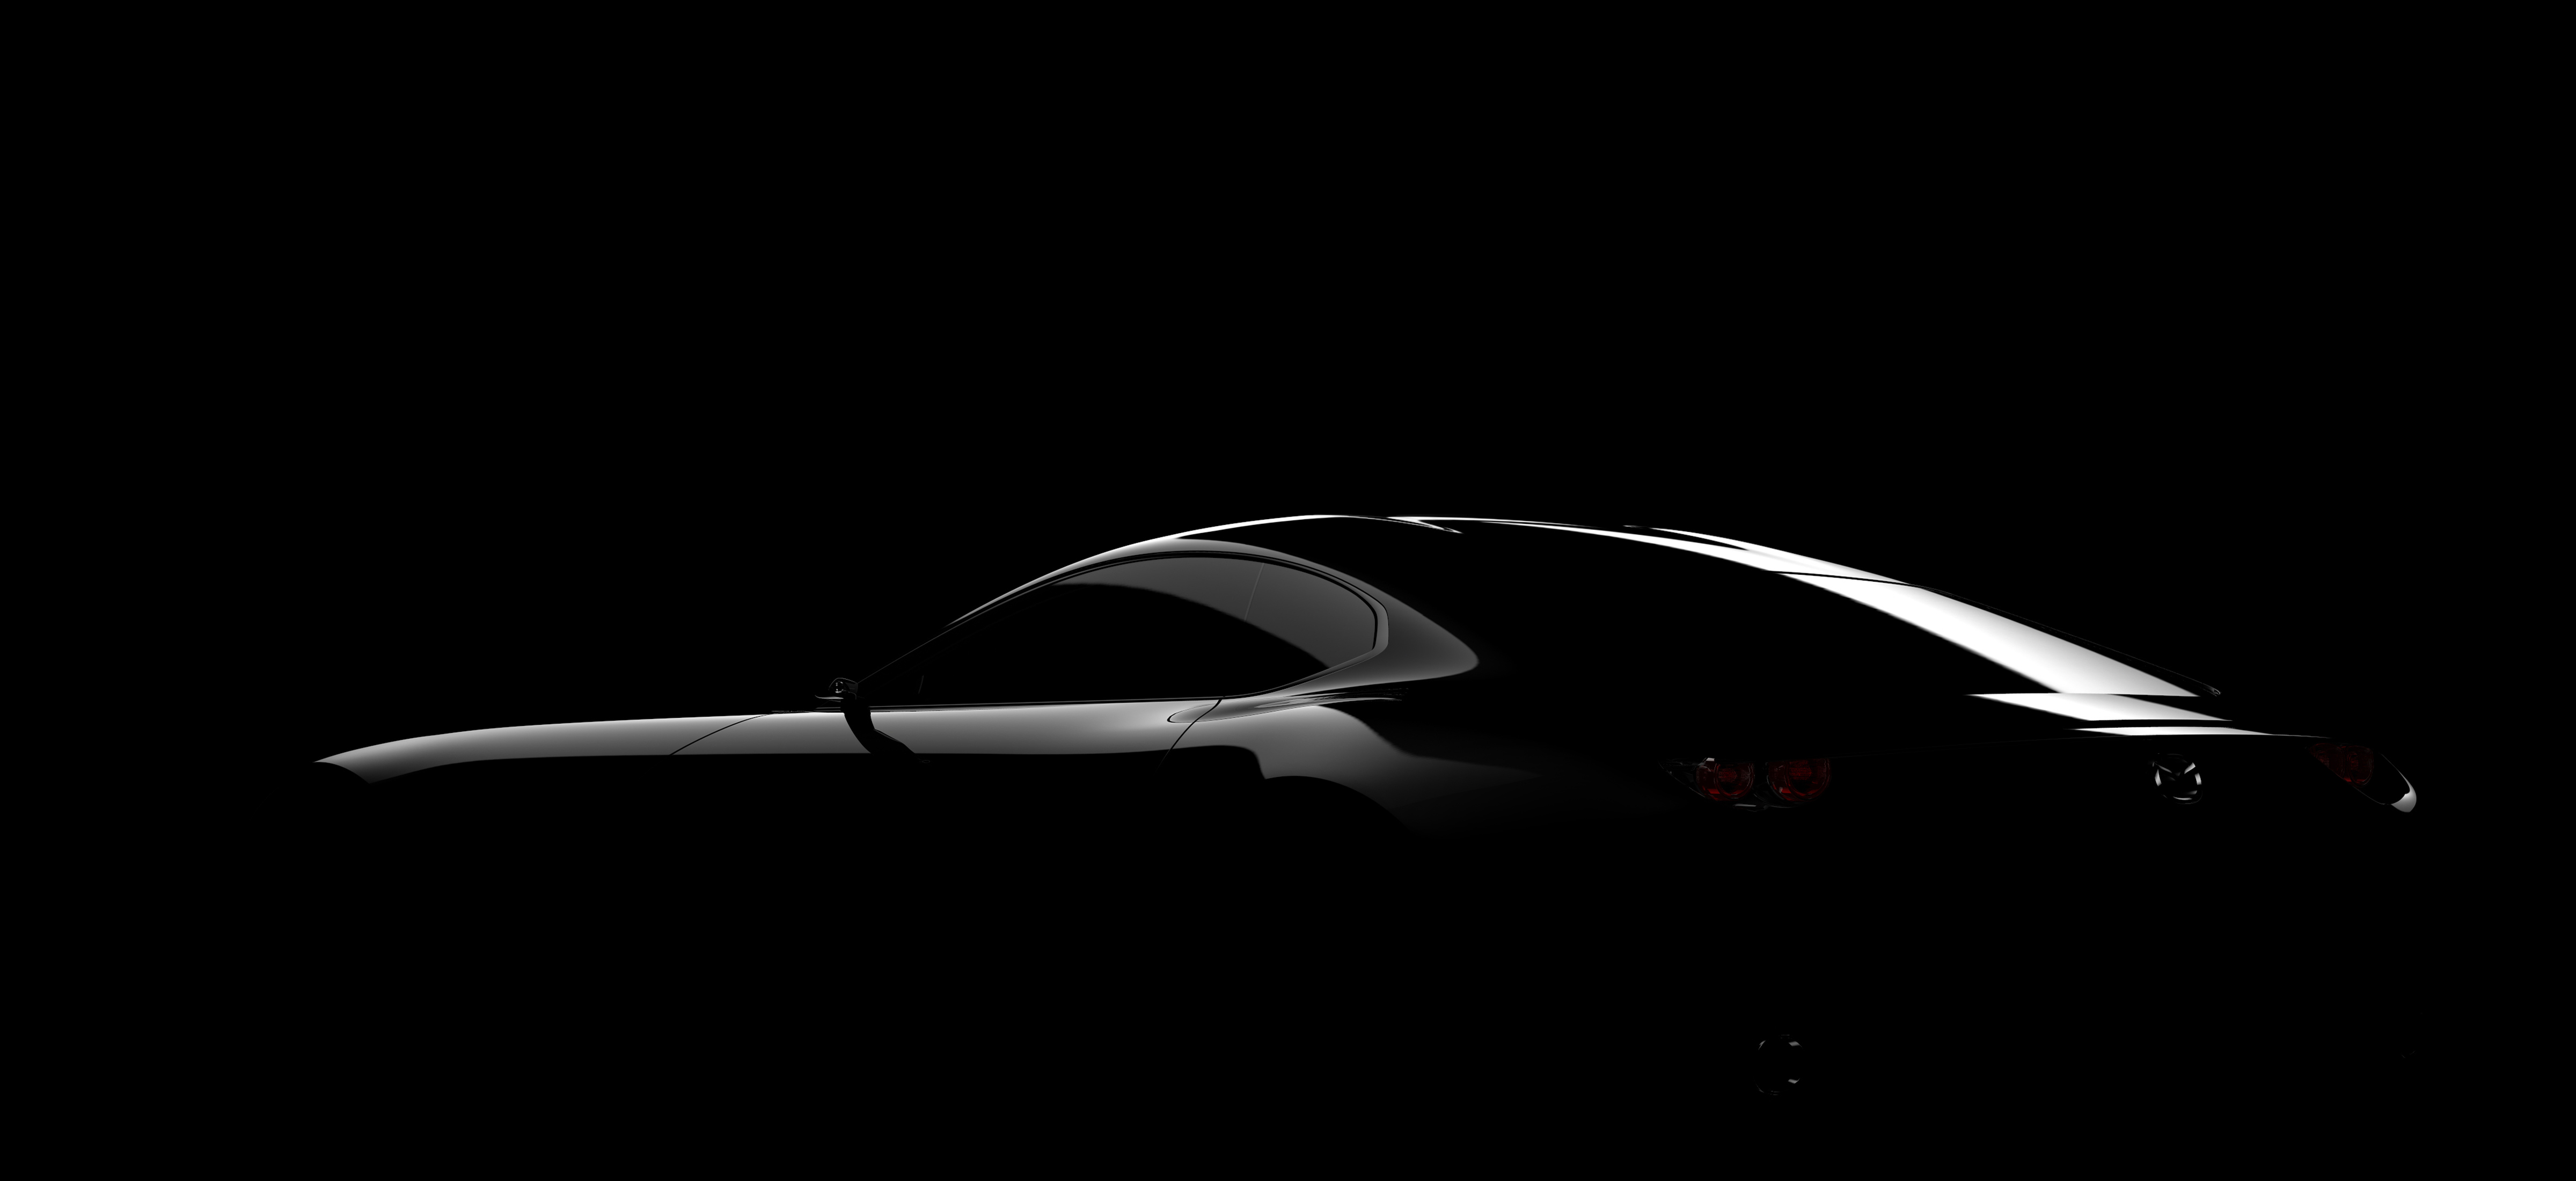 Delicieux In Another World Premiere, Mazda Will Unveil A New Sports Car Concept At  The Upcoming Tokyo Motor Show, Which Opens Its Doors To The Media On 28th  October ...